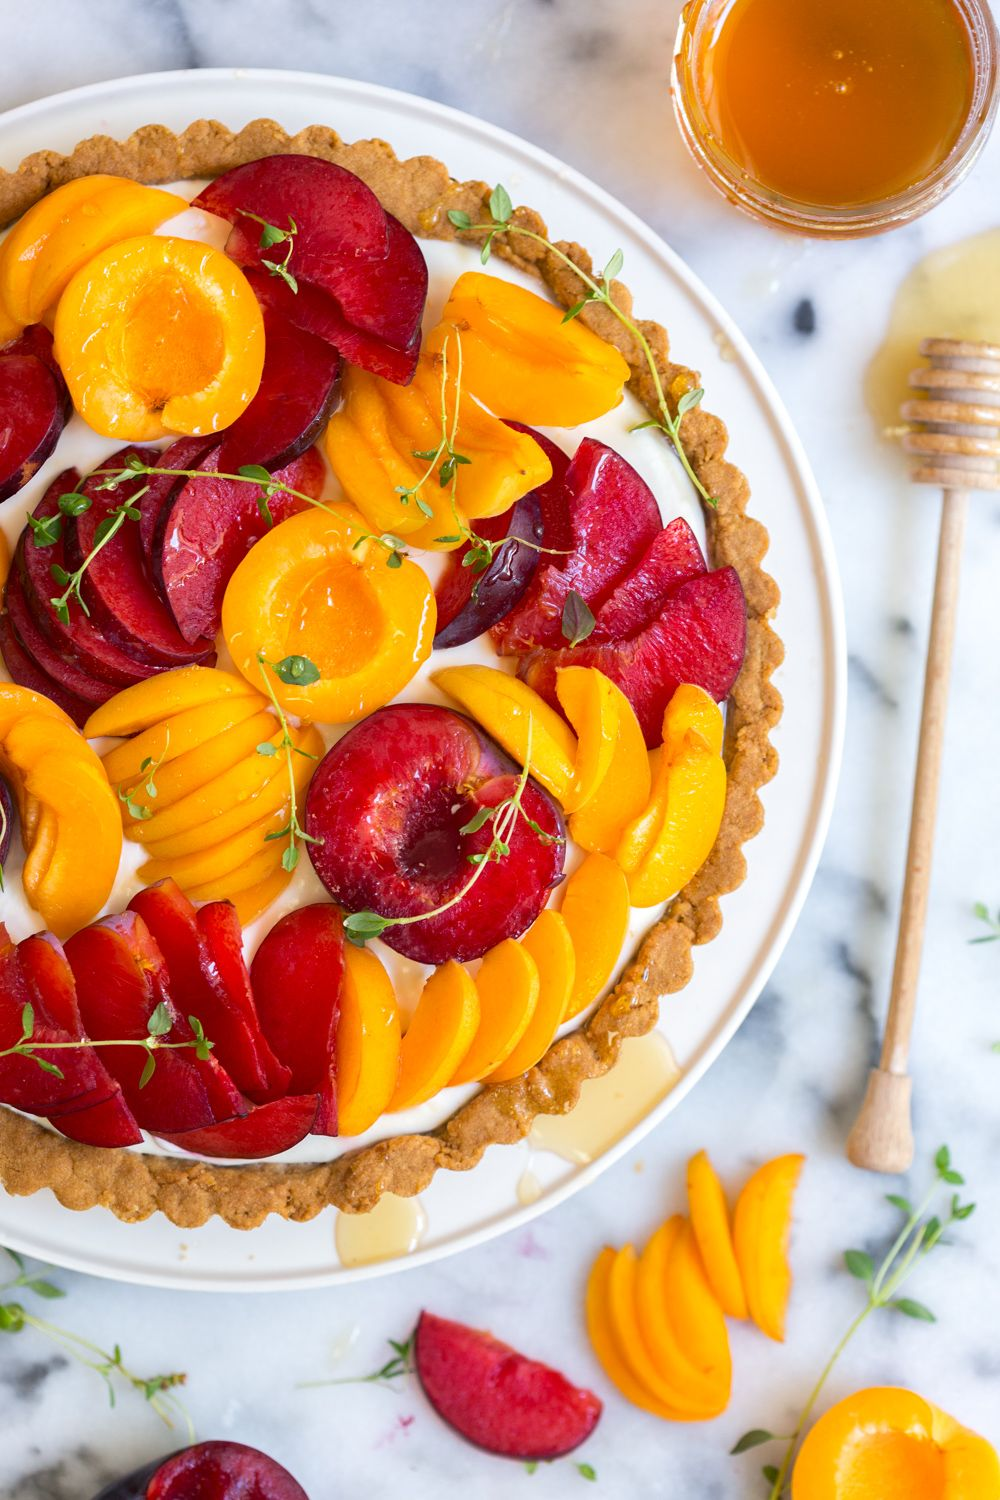 Goat Cheese Tart with Apricots and Plumcots